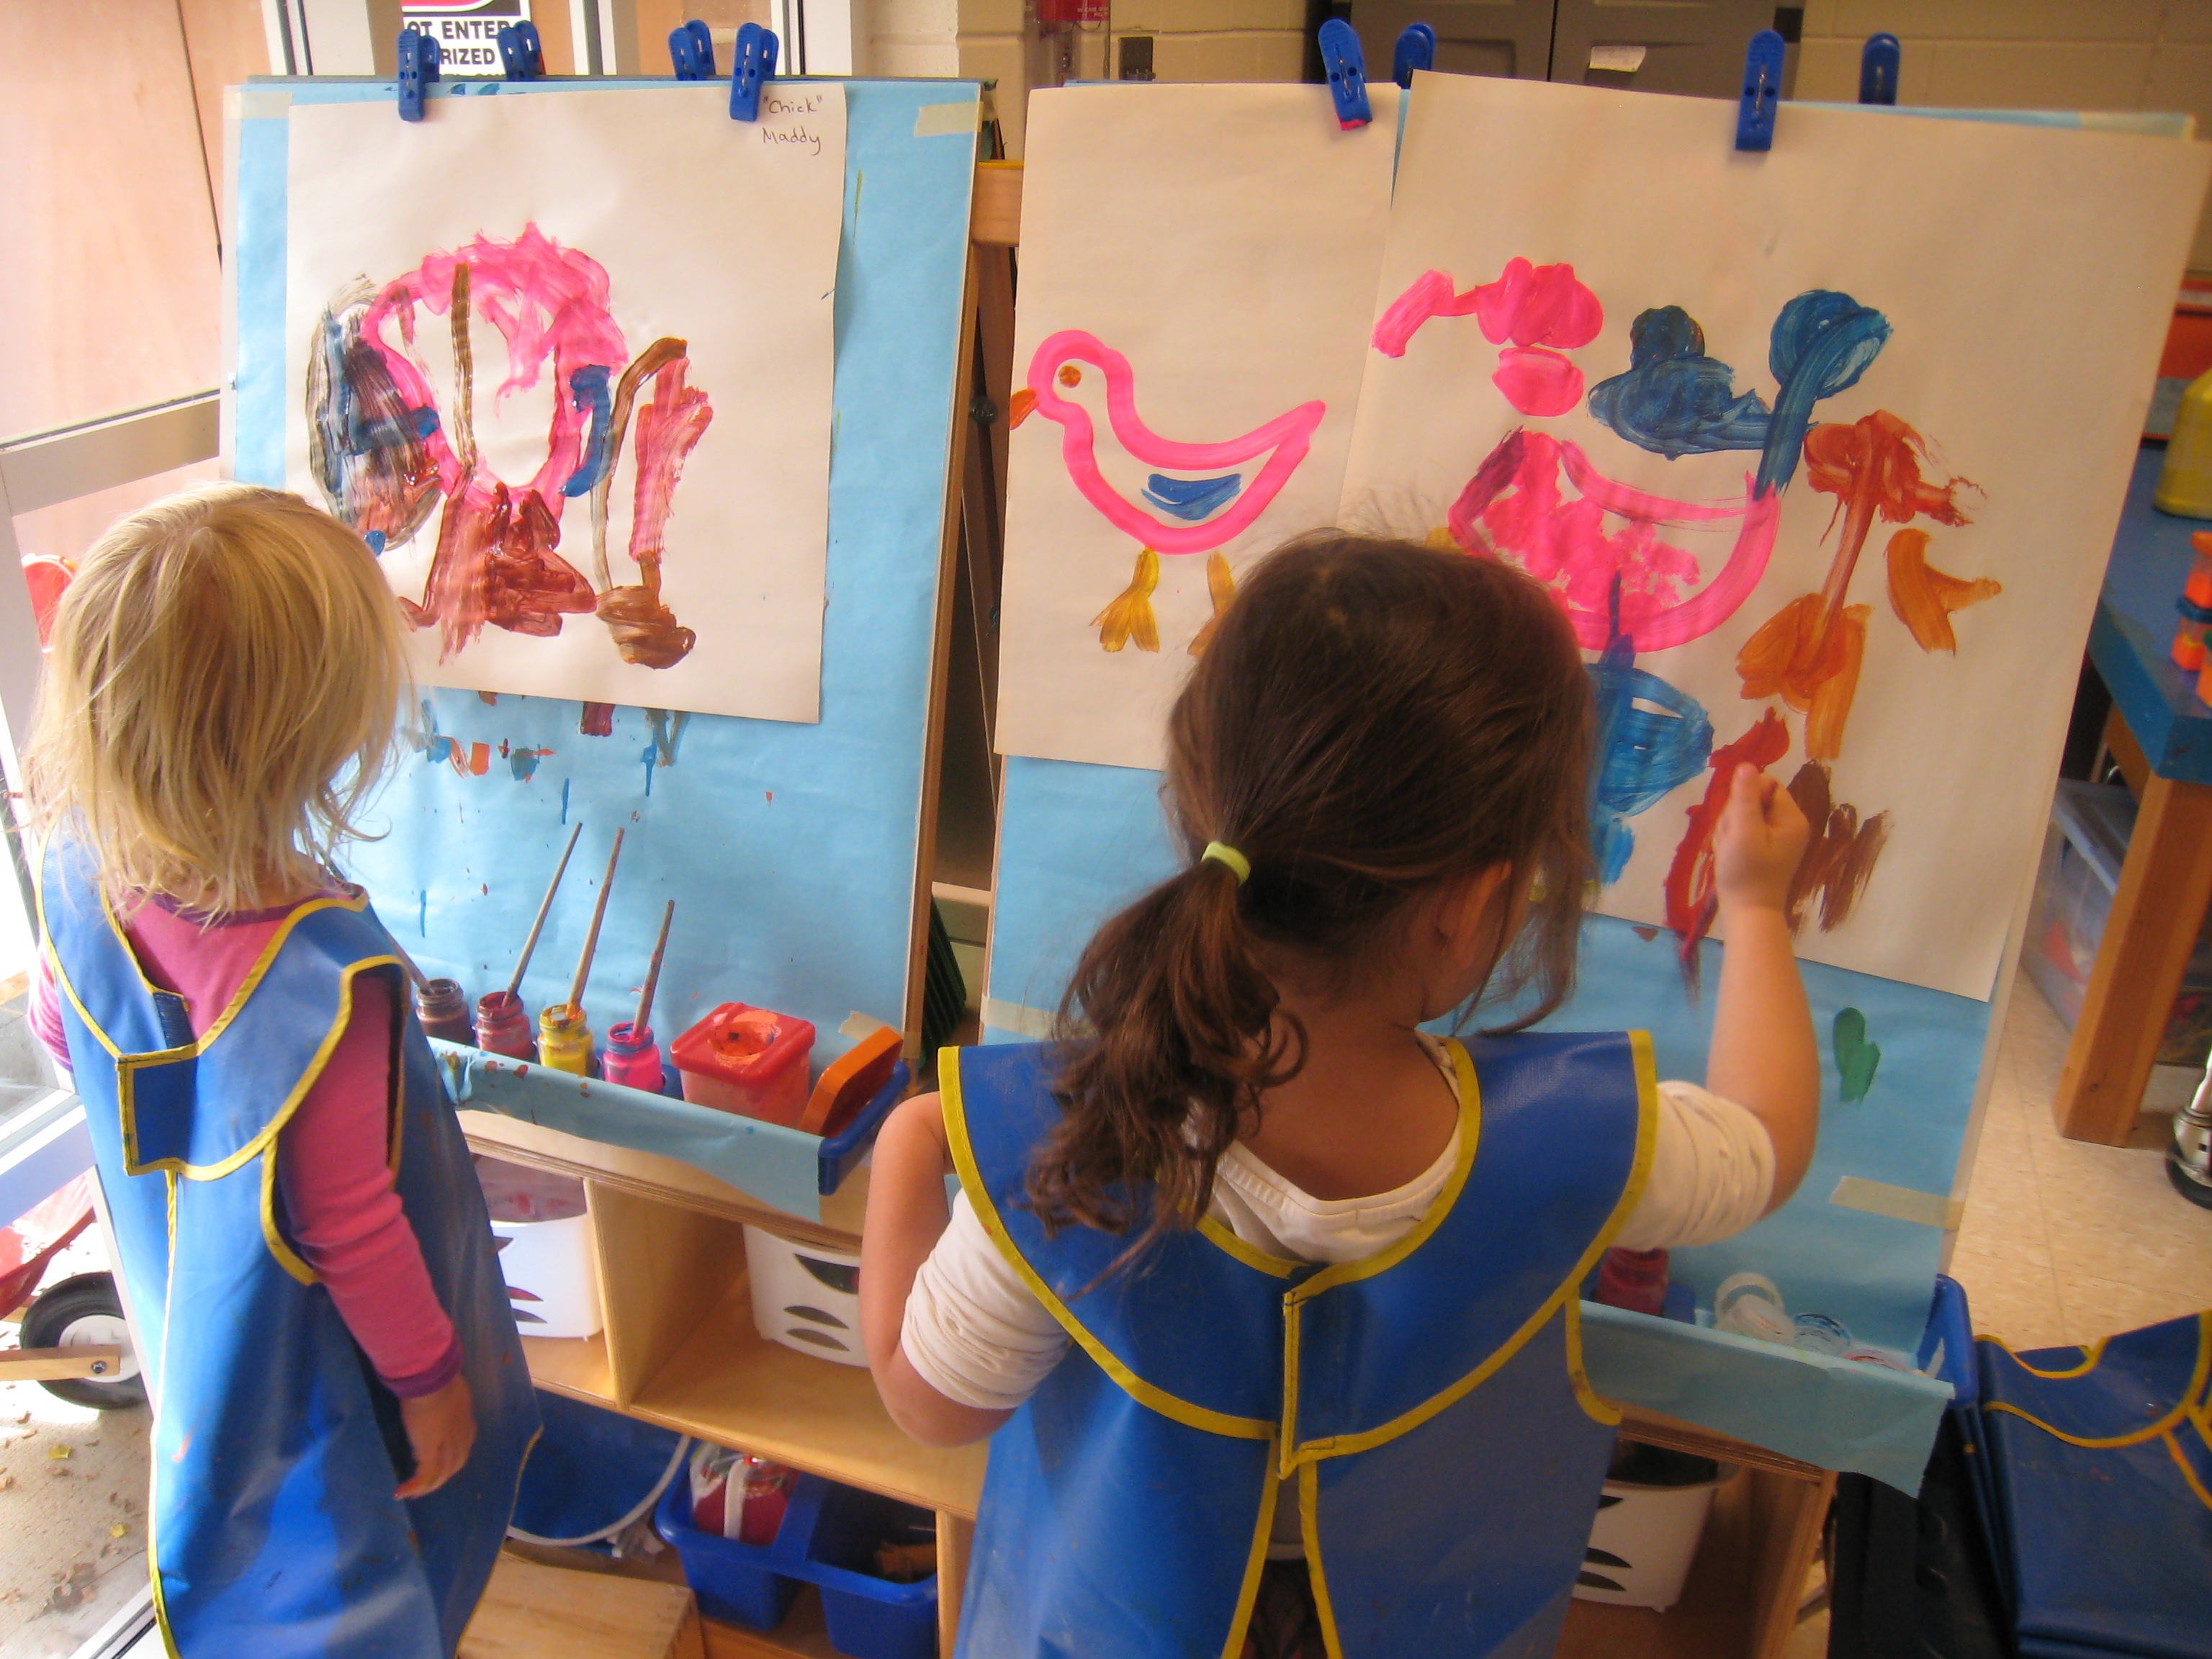 St. Mary's Academics Early Childhood